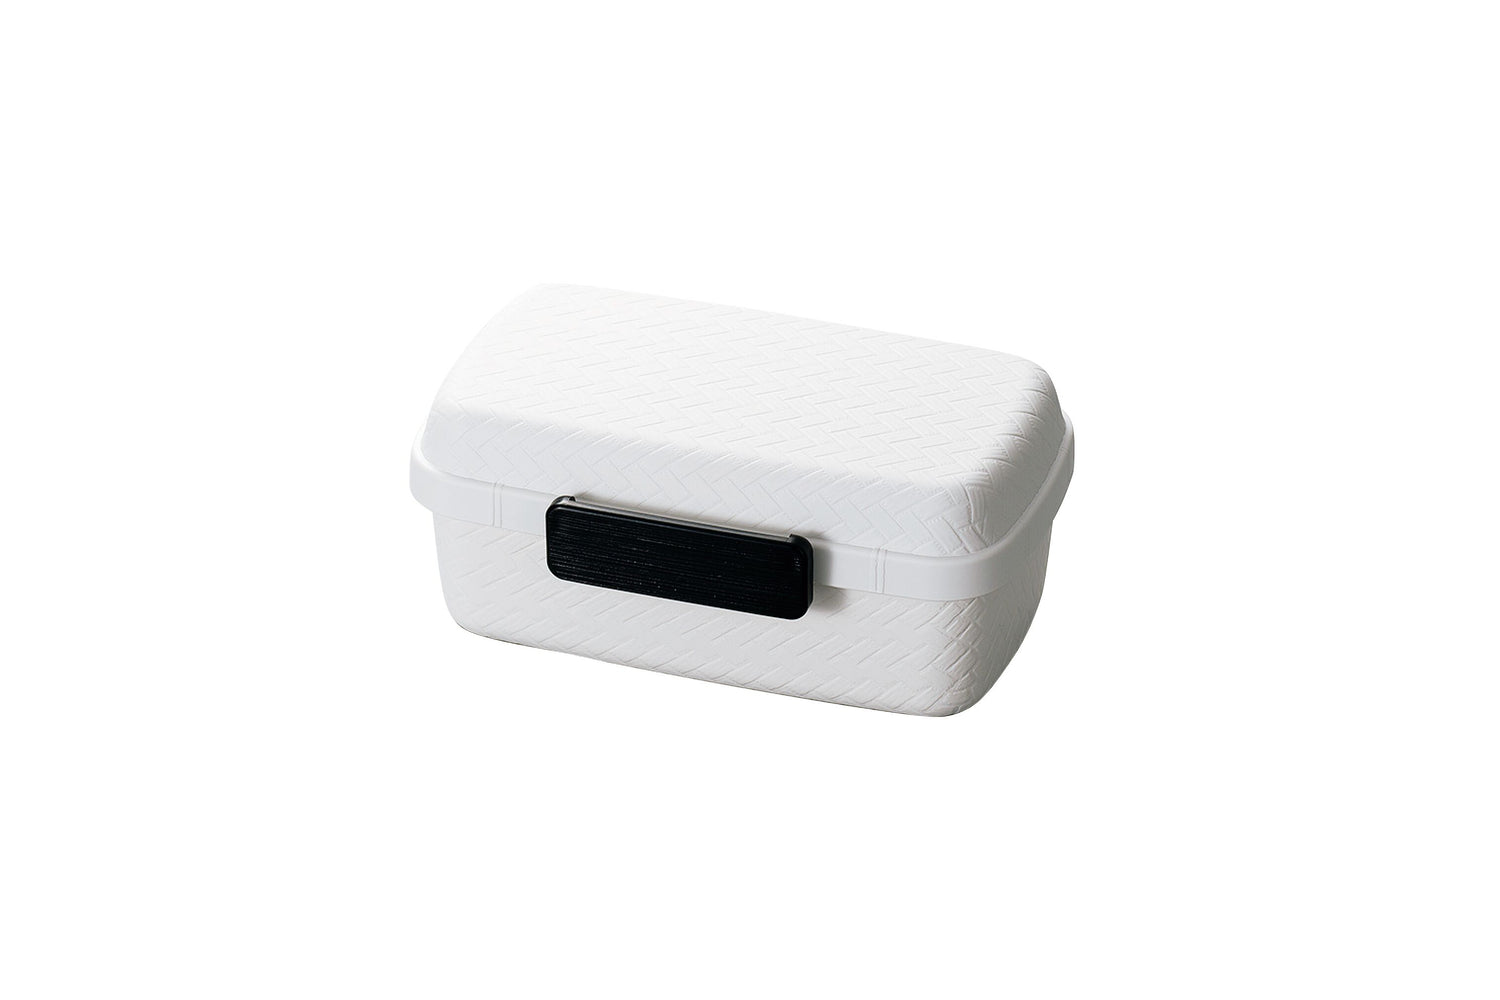 Nuri Ajiro Side Lock Bento Box | White by Hakoya - Bento&co Japanese Bento Lunch Boxes and Kitchenware Specialists